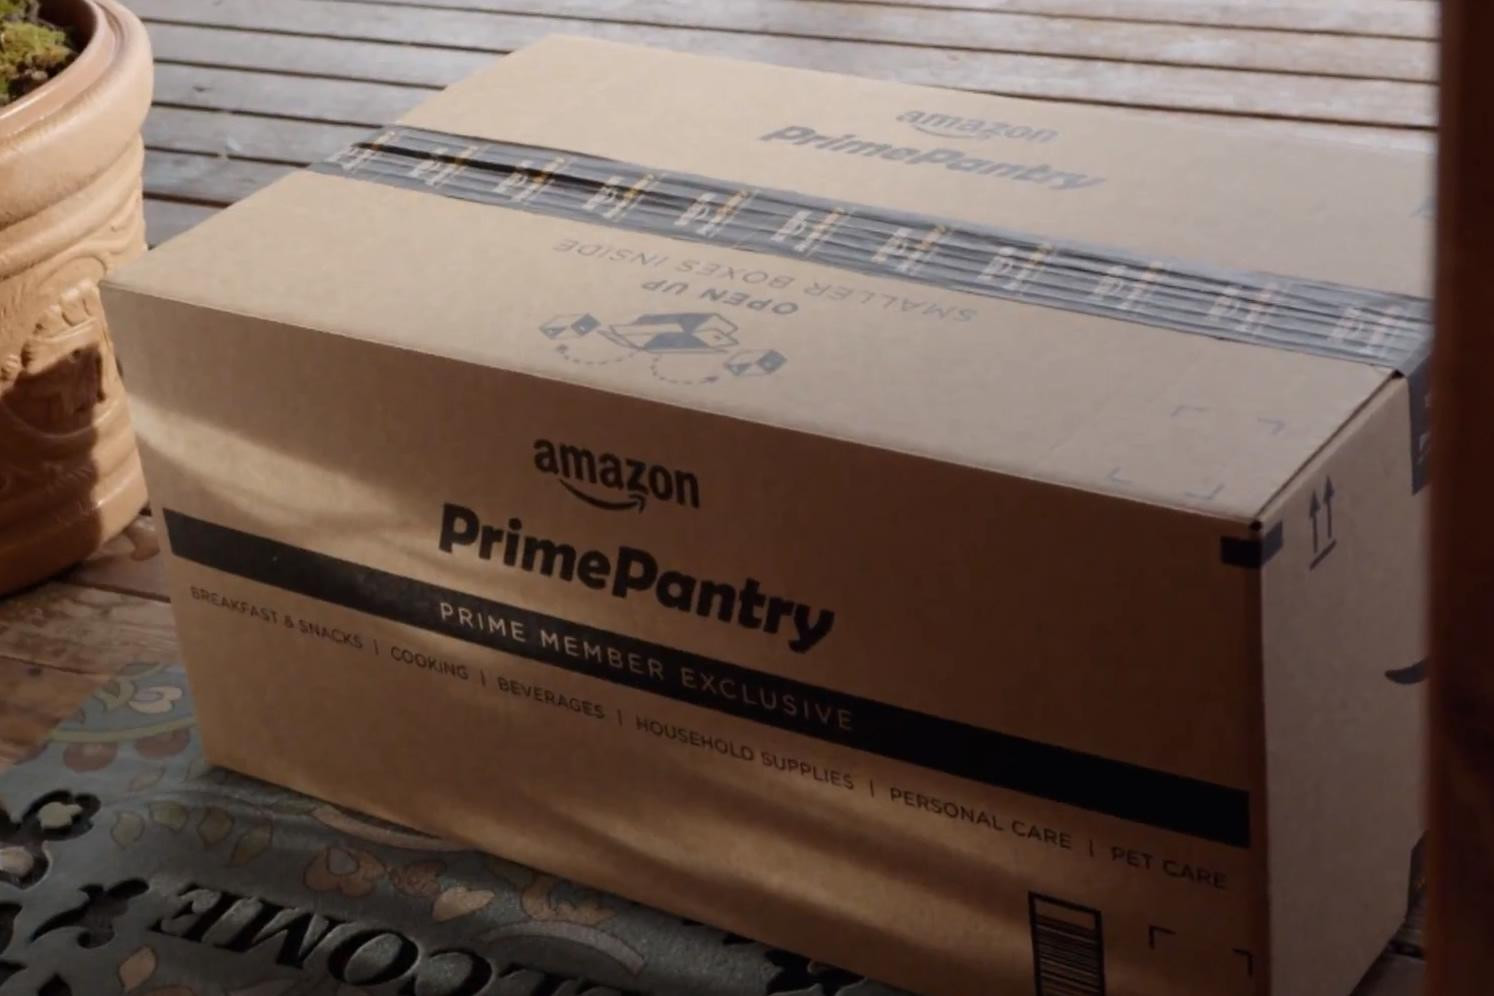 Best ideas about Amazon Pantry Box . Save or Pin Amazon takes on the grocery store with Prime Pantry Now.